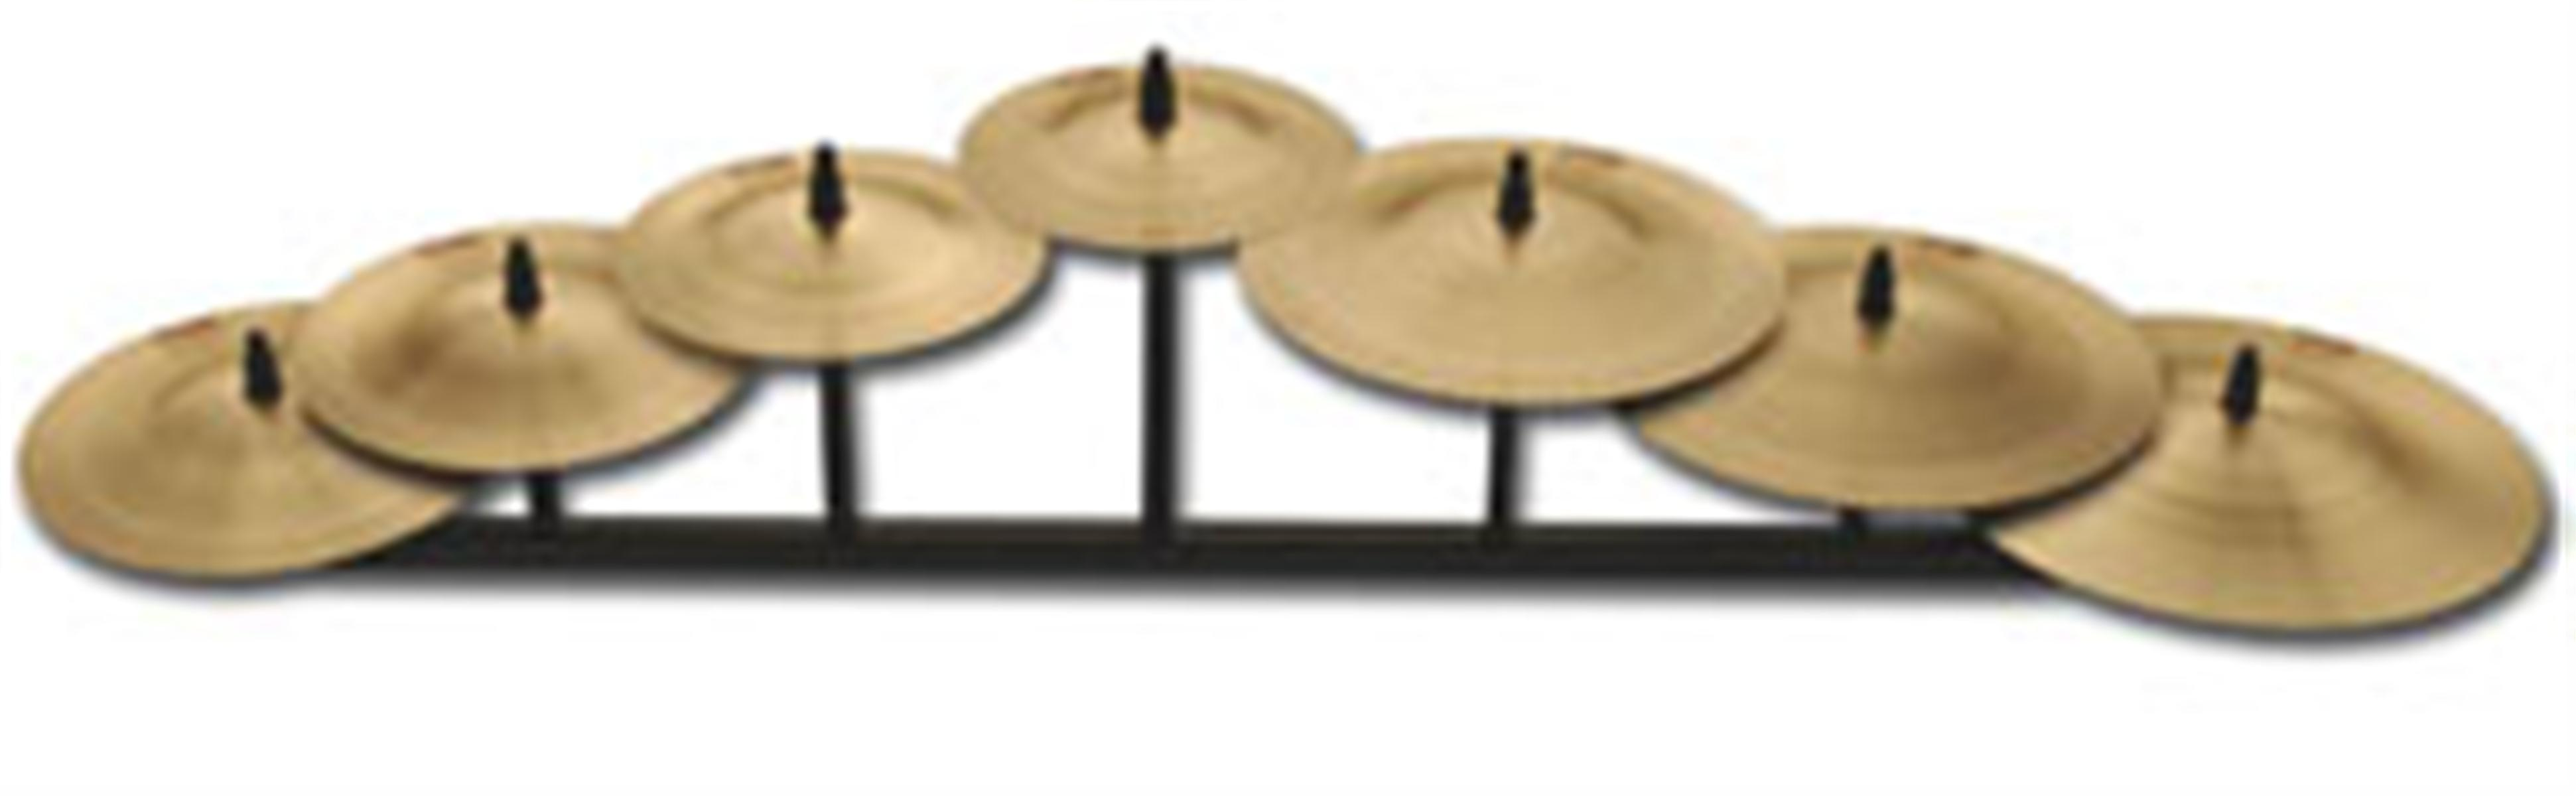 Paiste 7 Arm Cup Chime Holder Special Sounds Percussion Accessory (SP56100)